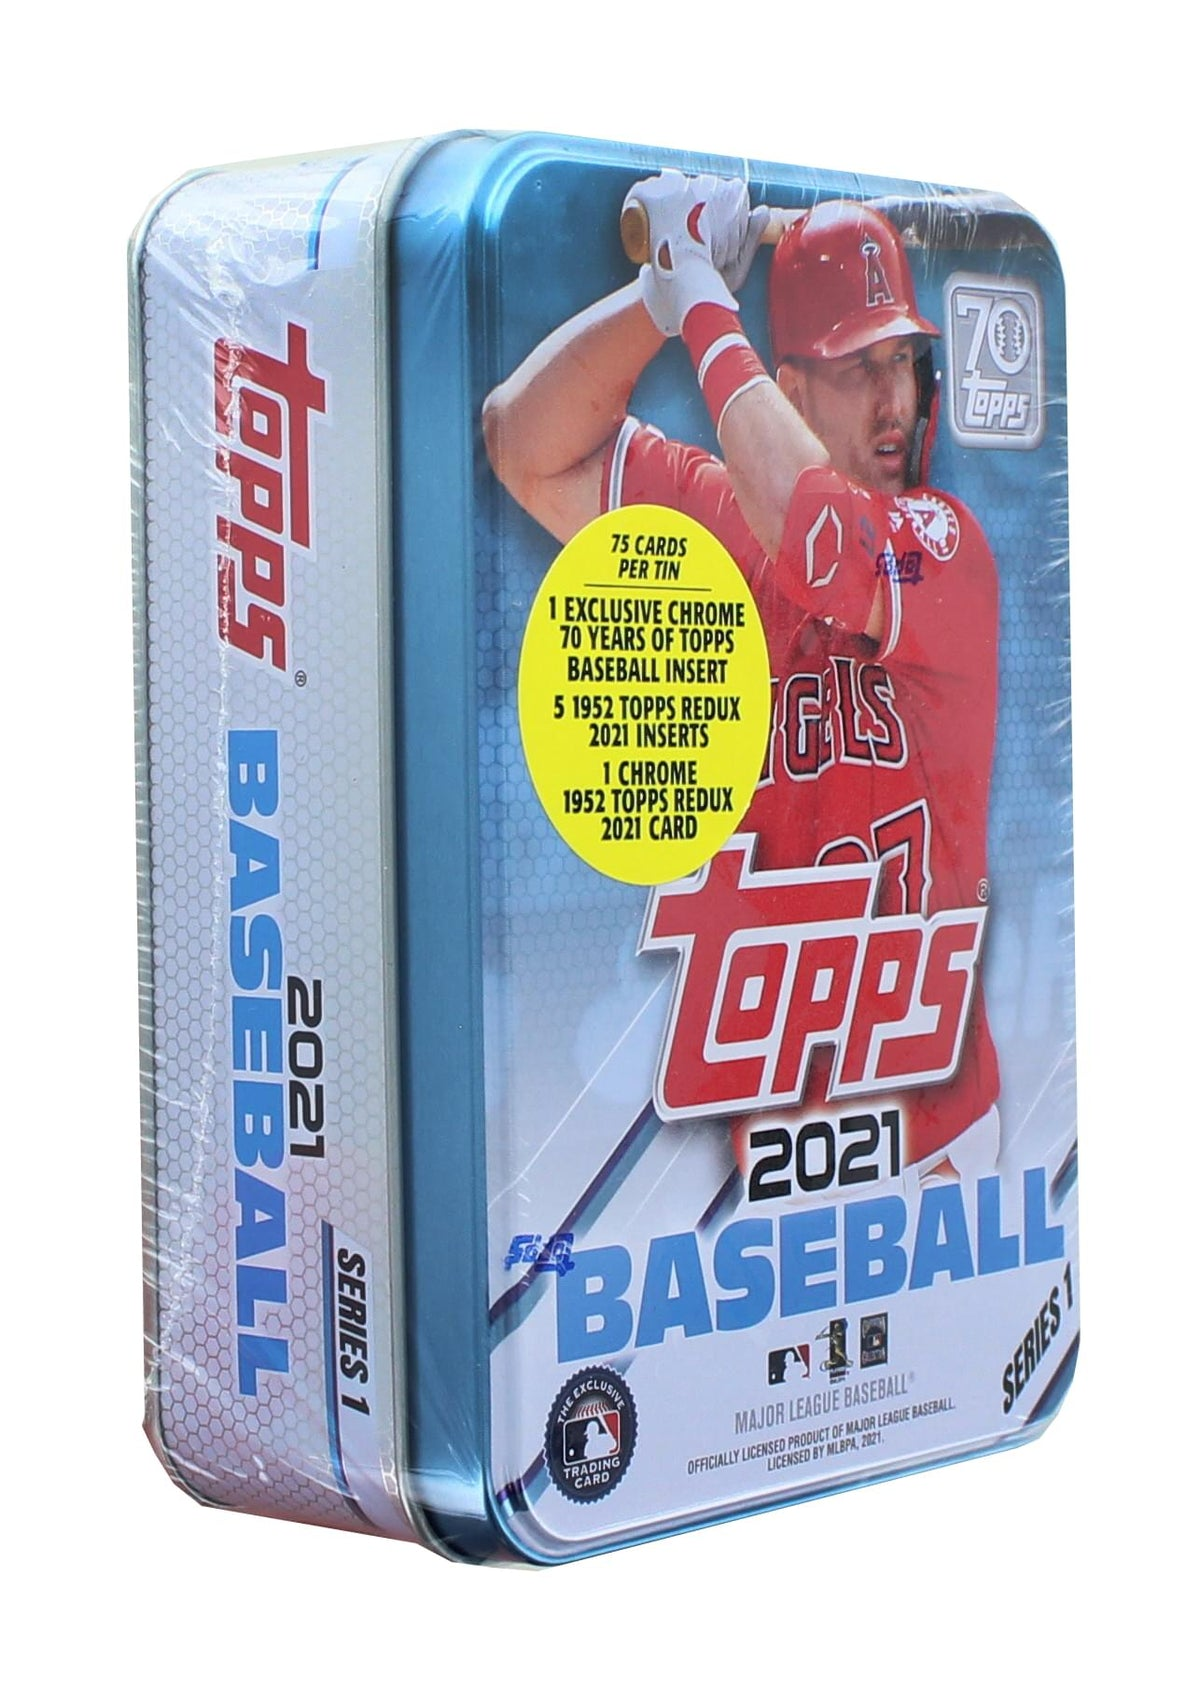 MLB 2021 Topps Series 1 Baseball Tin | 75 Cards